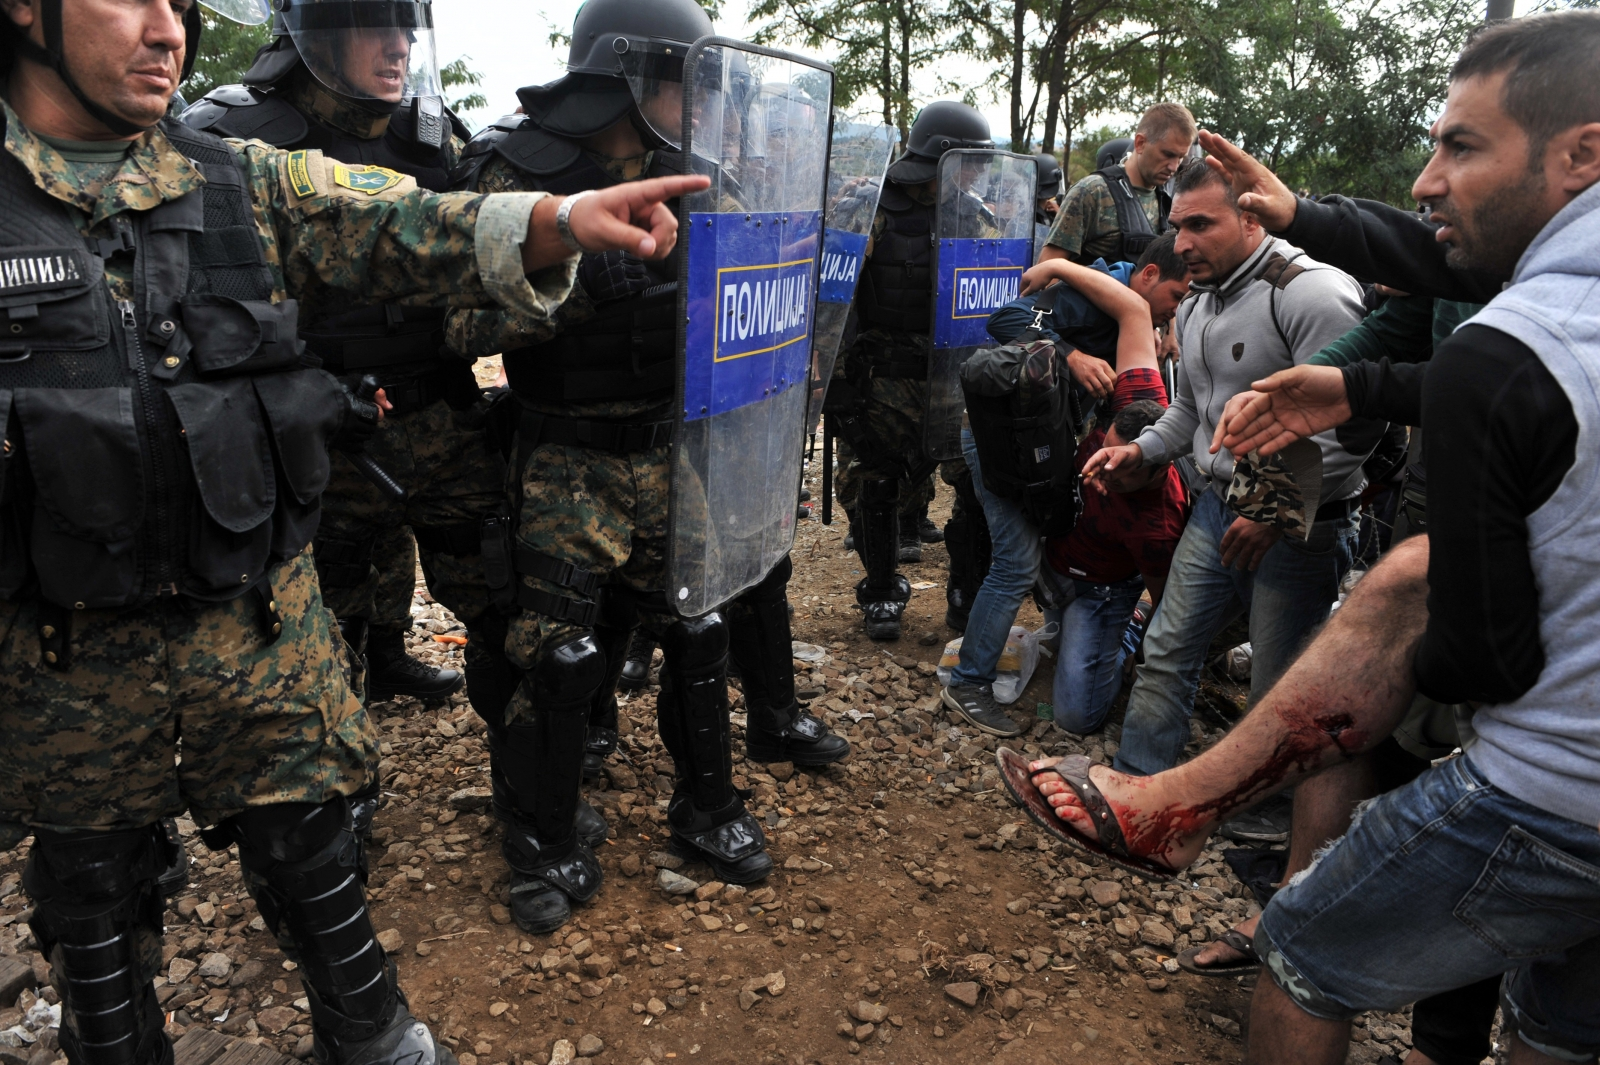 Macedonia migrant tear gas Greece